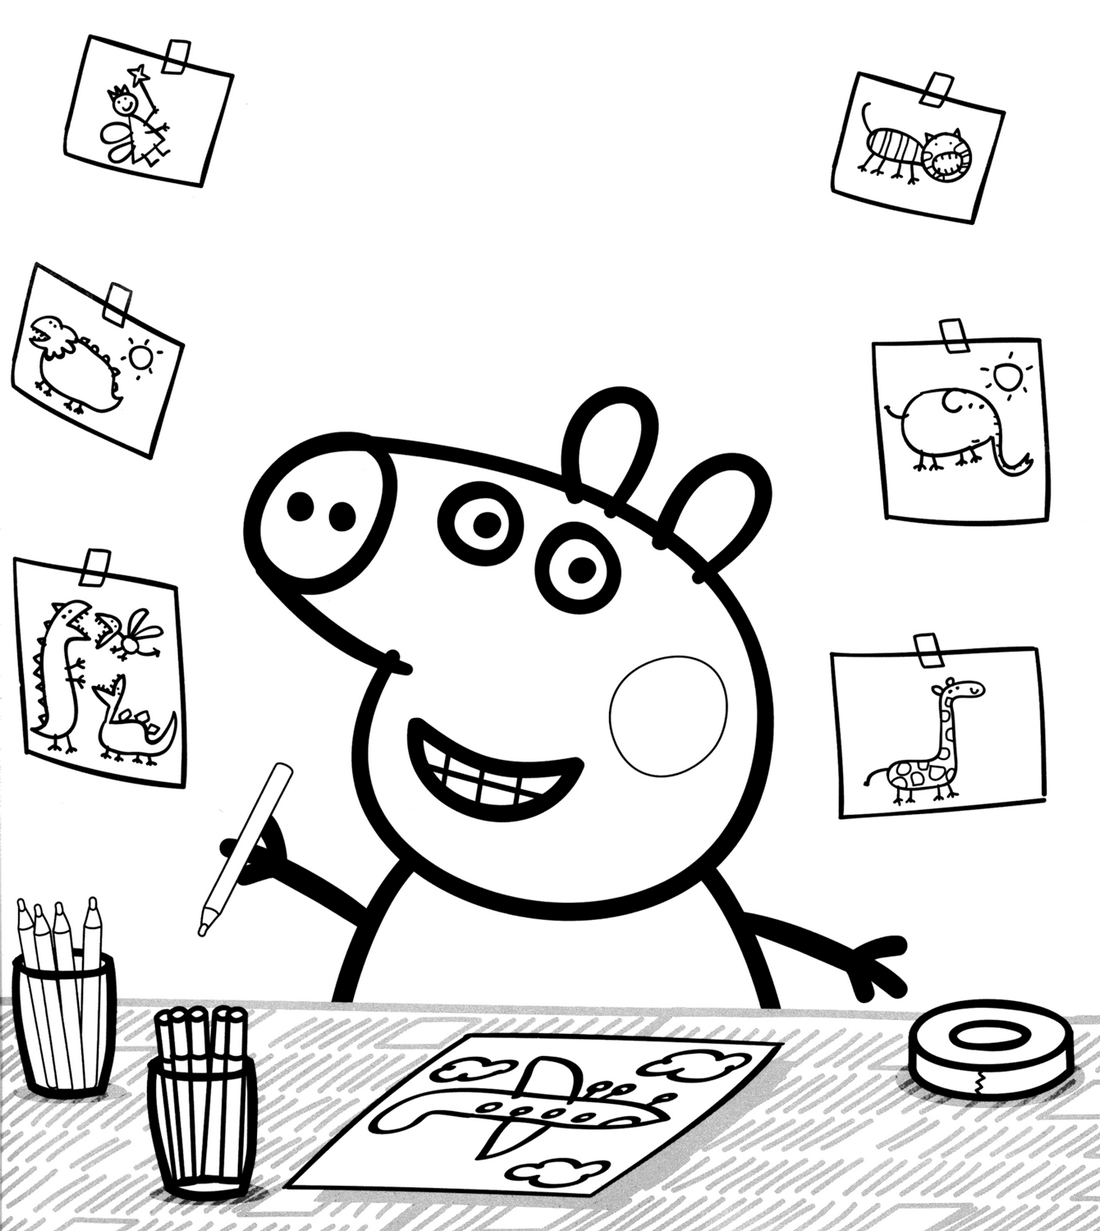 peppa-pig-colouring-book-printable-nick-jr